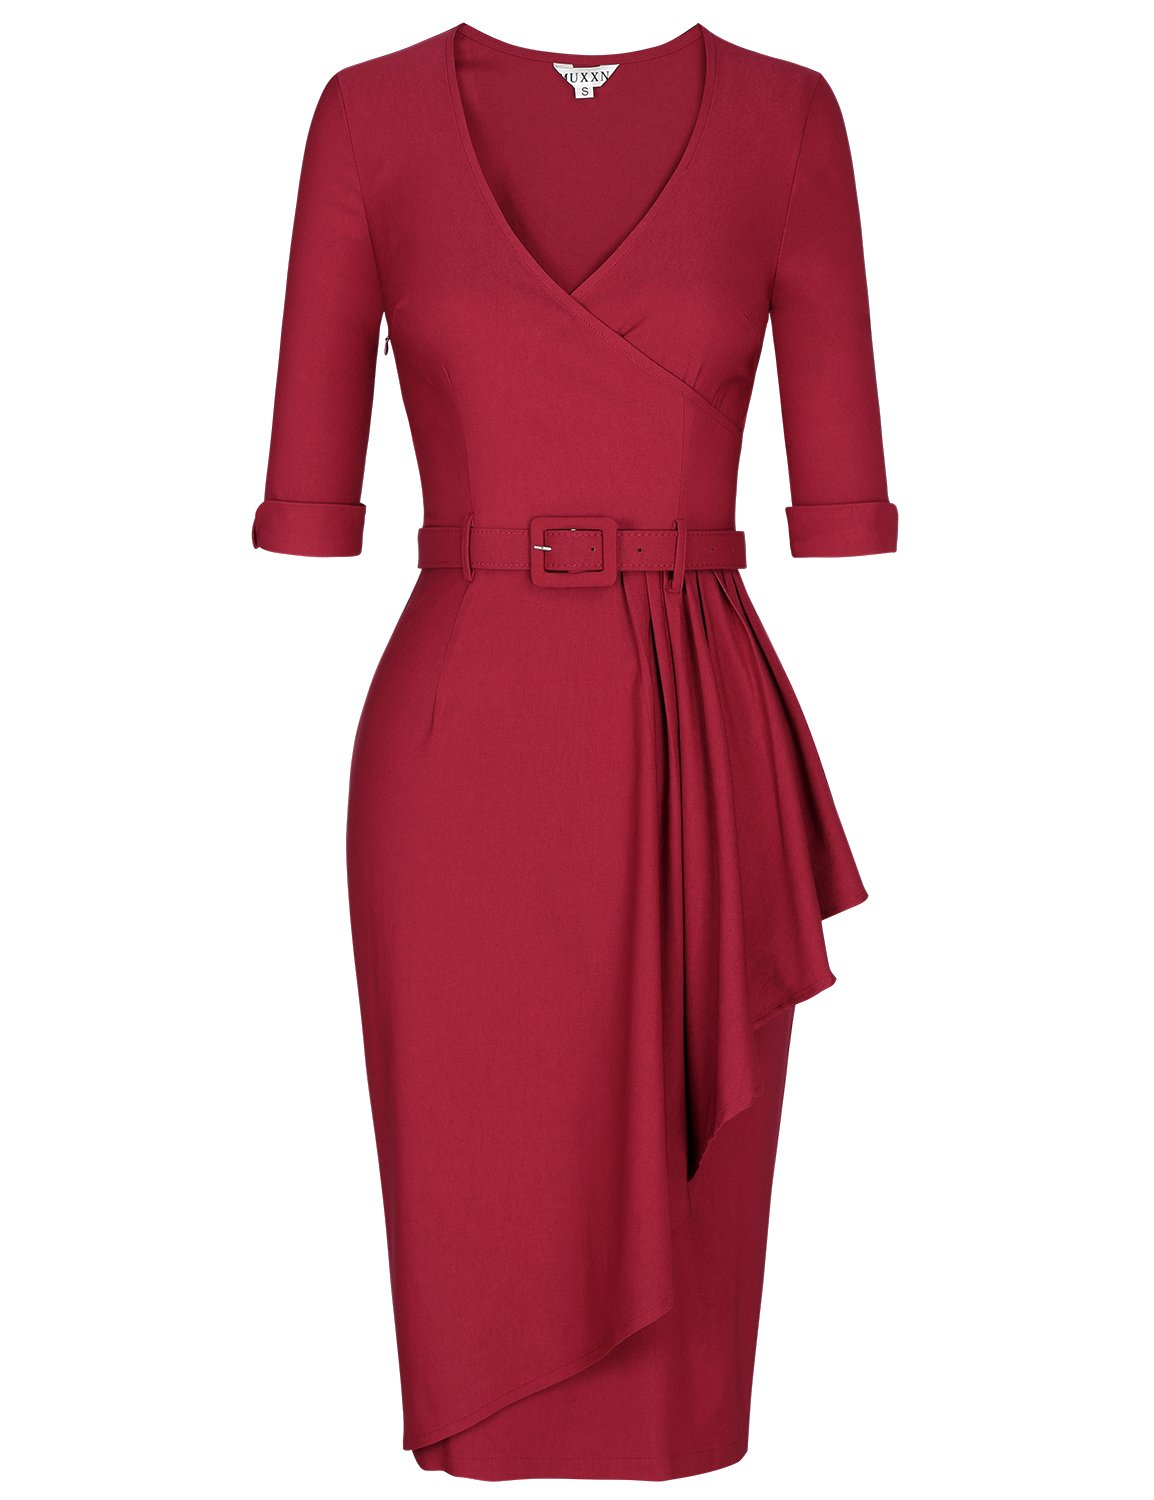 MUXXN Women's 1950's Style Cut Out Neck Knee Length Bridesmaid Dress (Burgundy L)